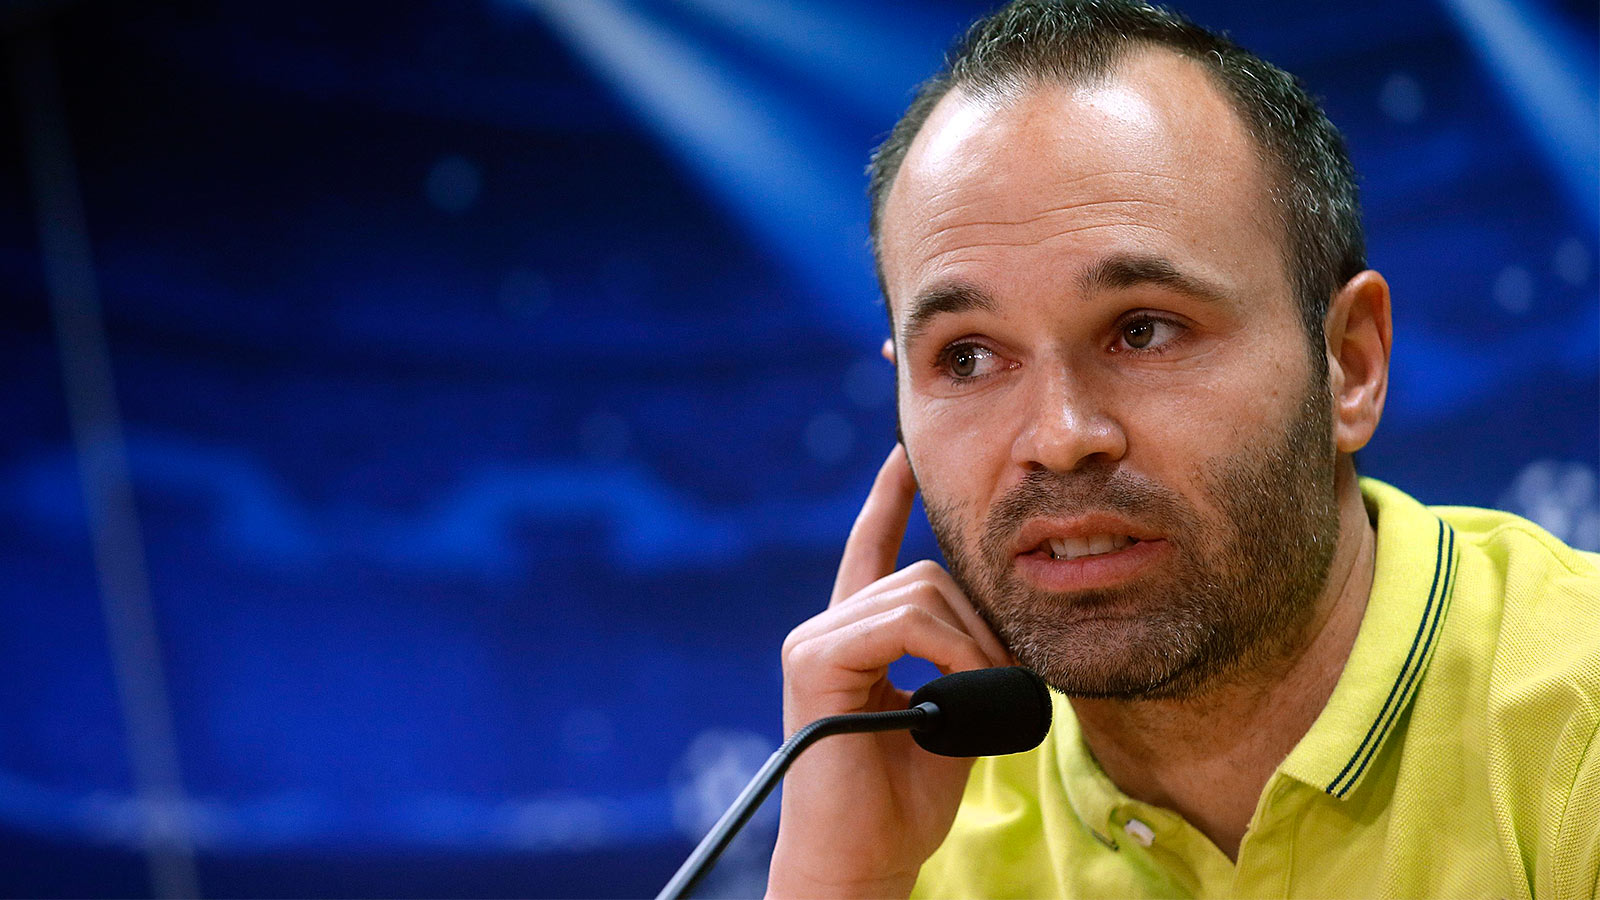 Instagram apologizes for removing account from user and giving it to Andres Iniesta